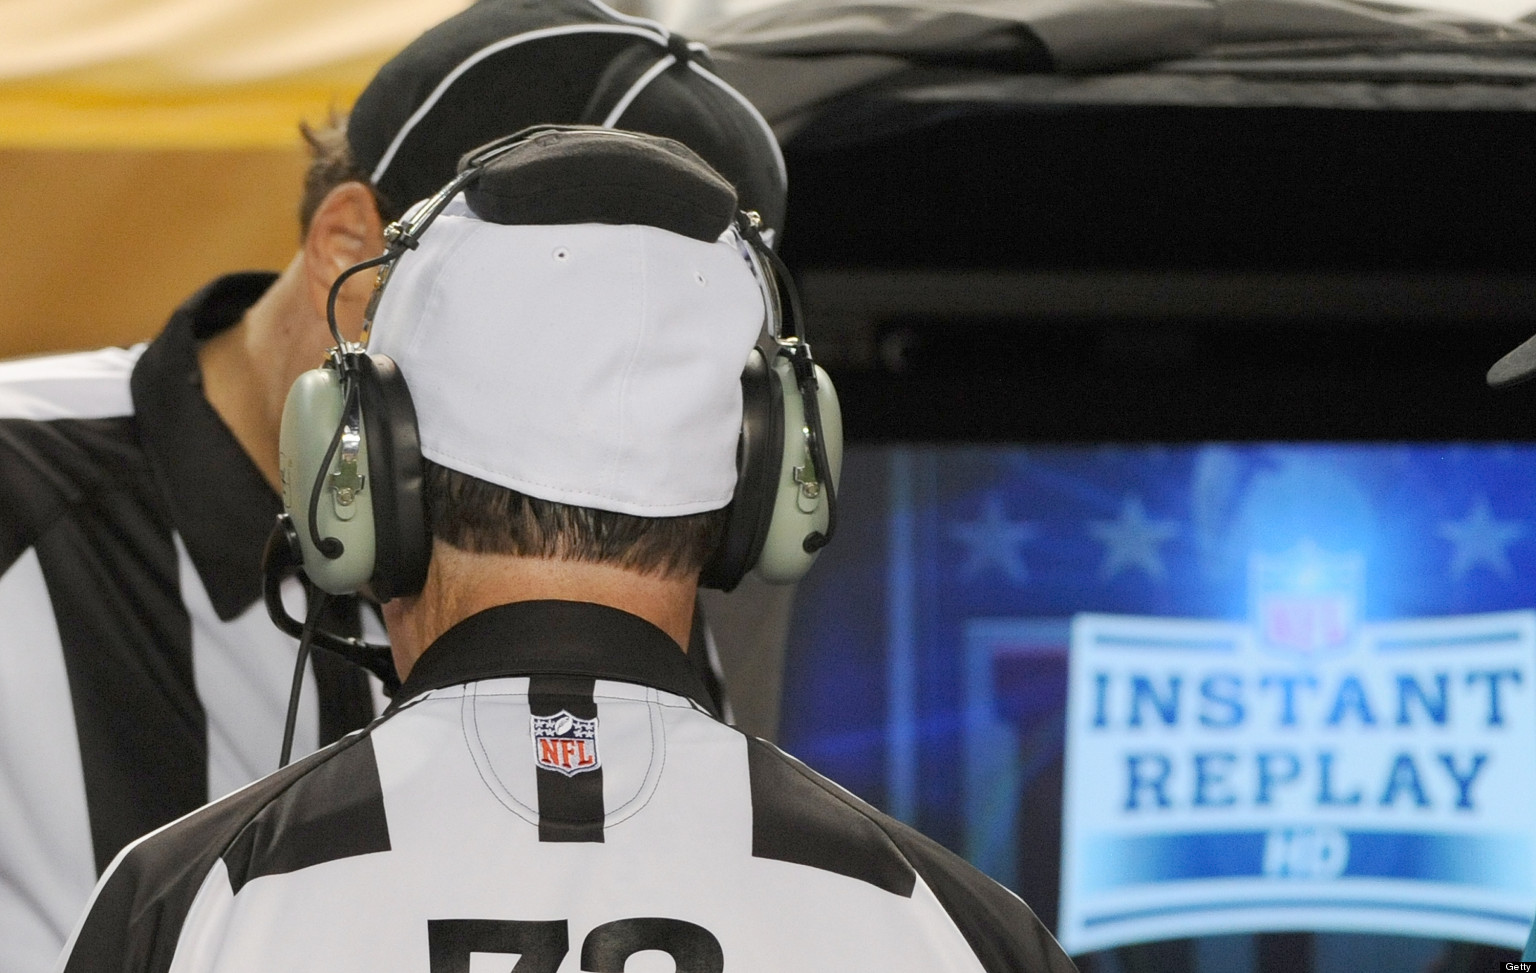 Nfl Instant Replay Official Review Could Use An Upgrade